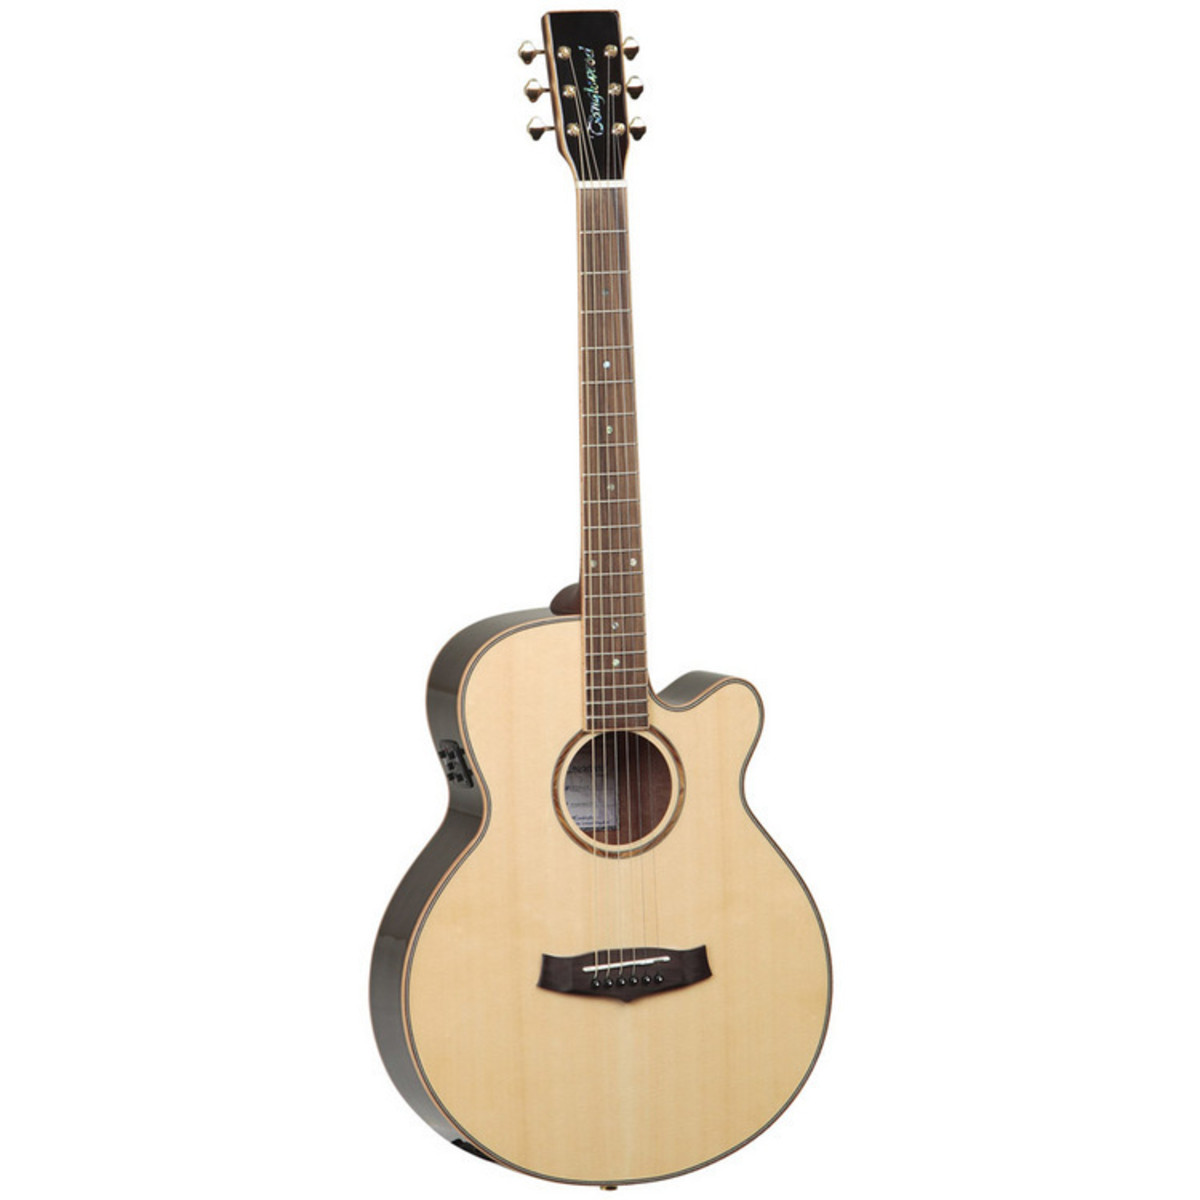 Tanglewood trsf ce vs super folk perfect ten pack op for The tanglewood